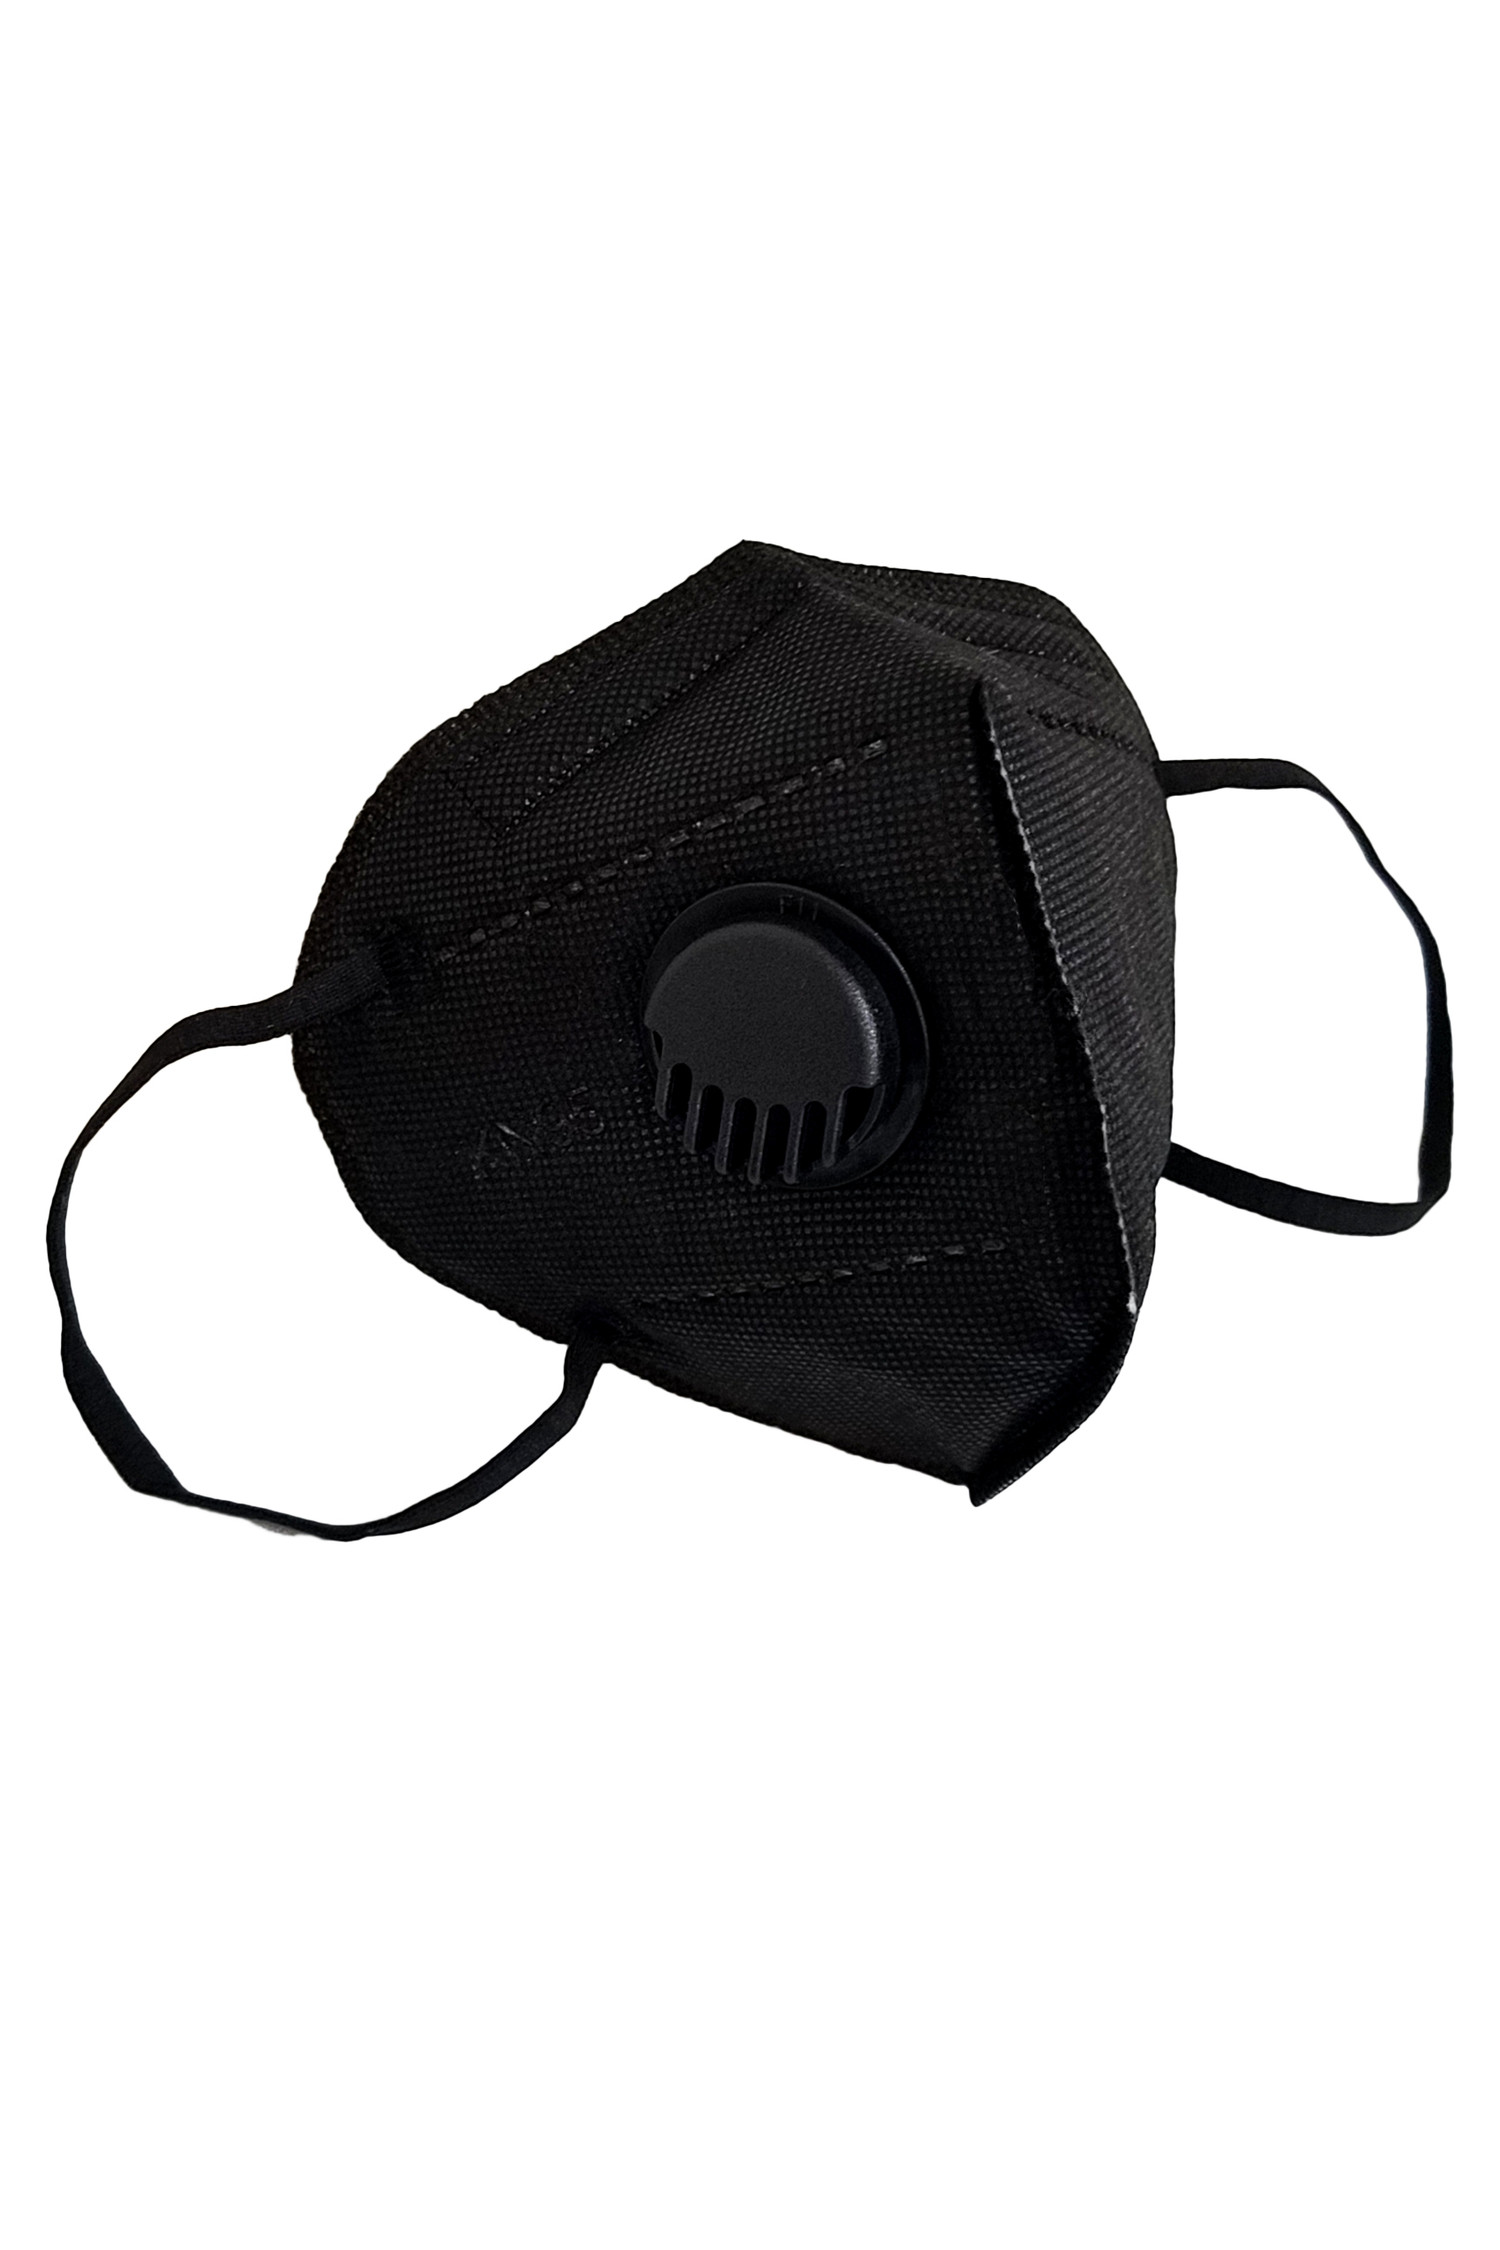 Black KN95 Face Mask with Air Valve